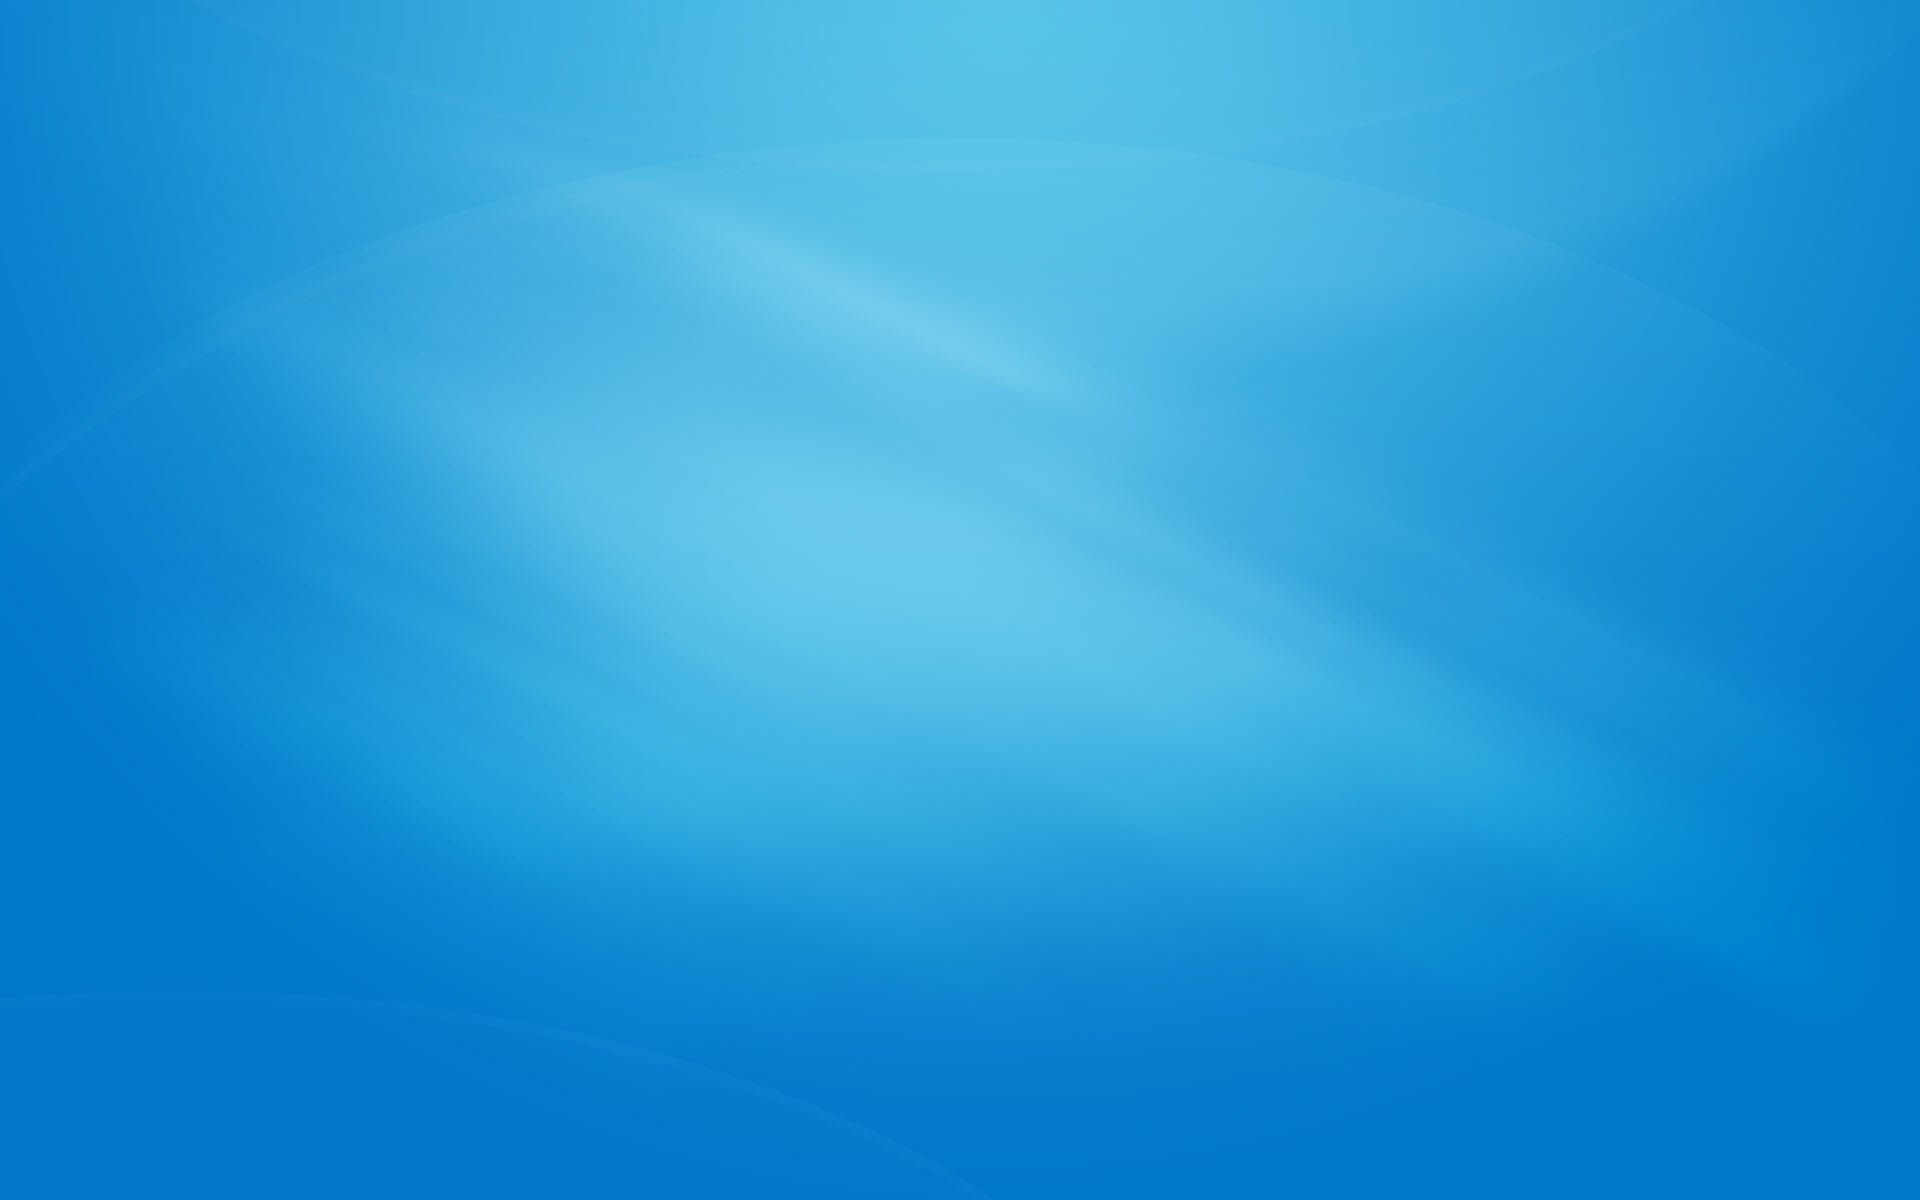 Solid Blue Background Wallpaper 61 images